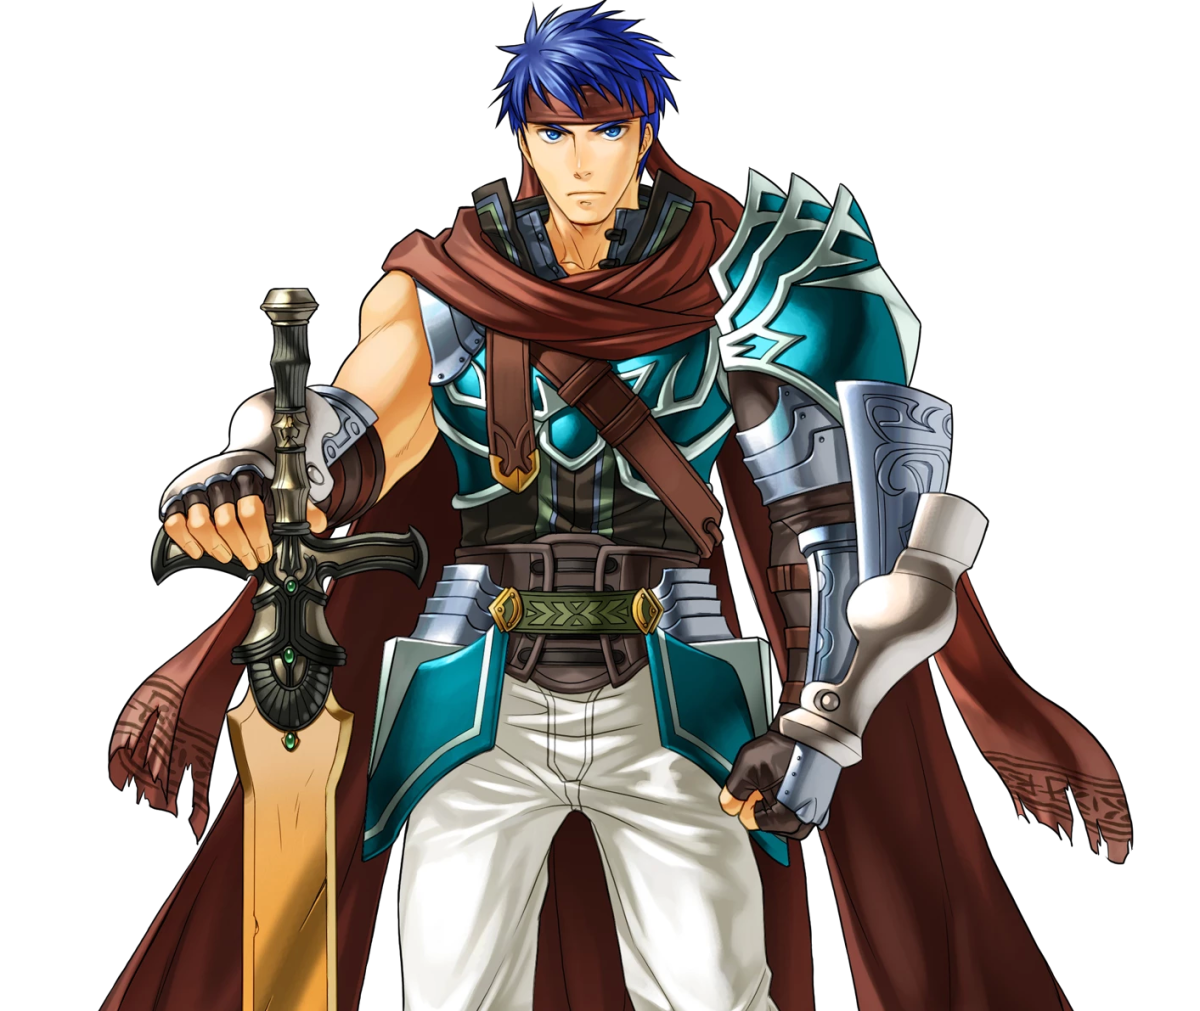 10 Amazing Similarities Between Ike From Fire Emblem and Luke from Star Wars